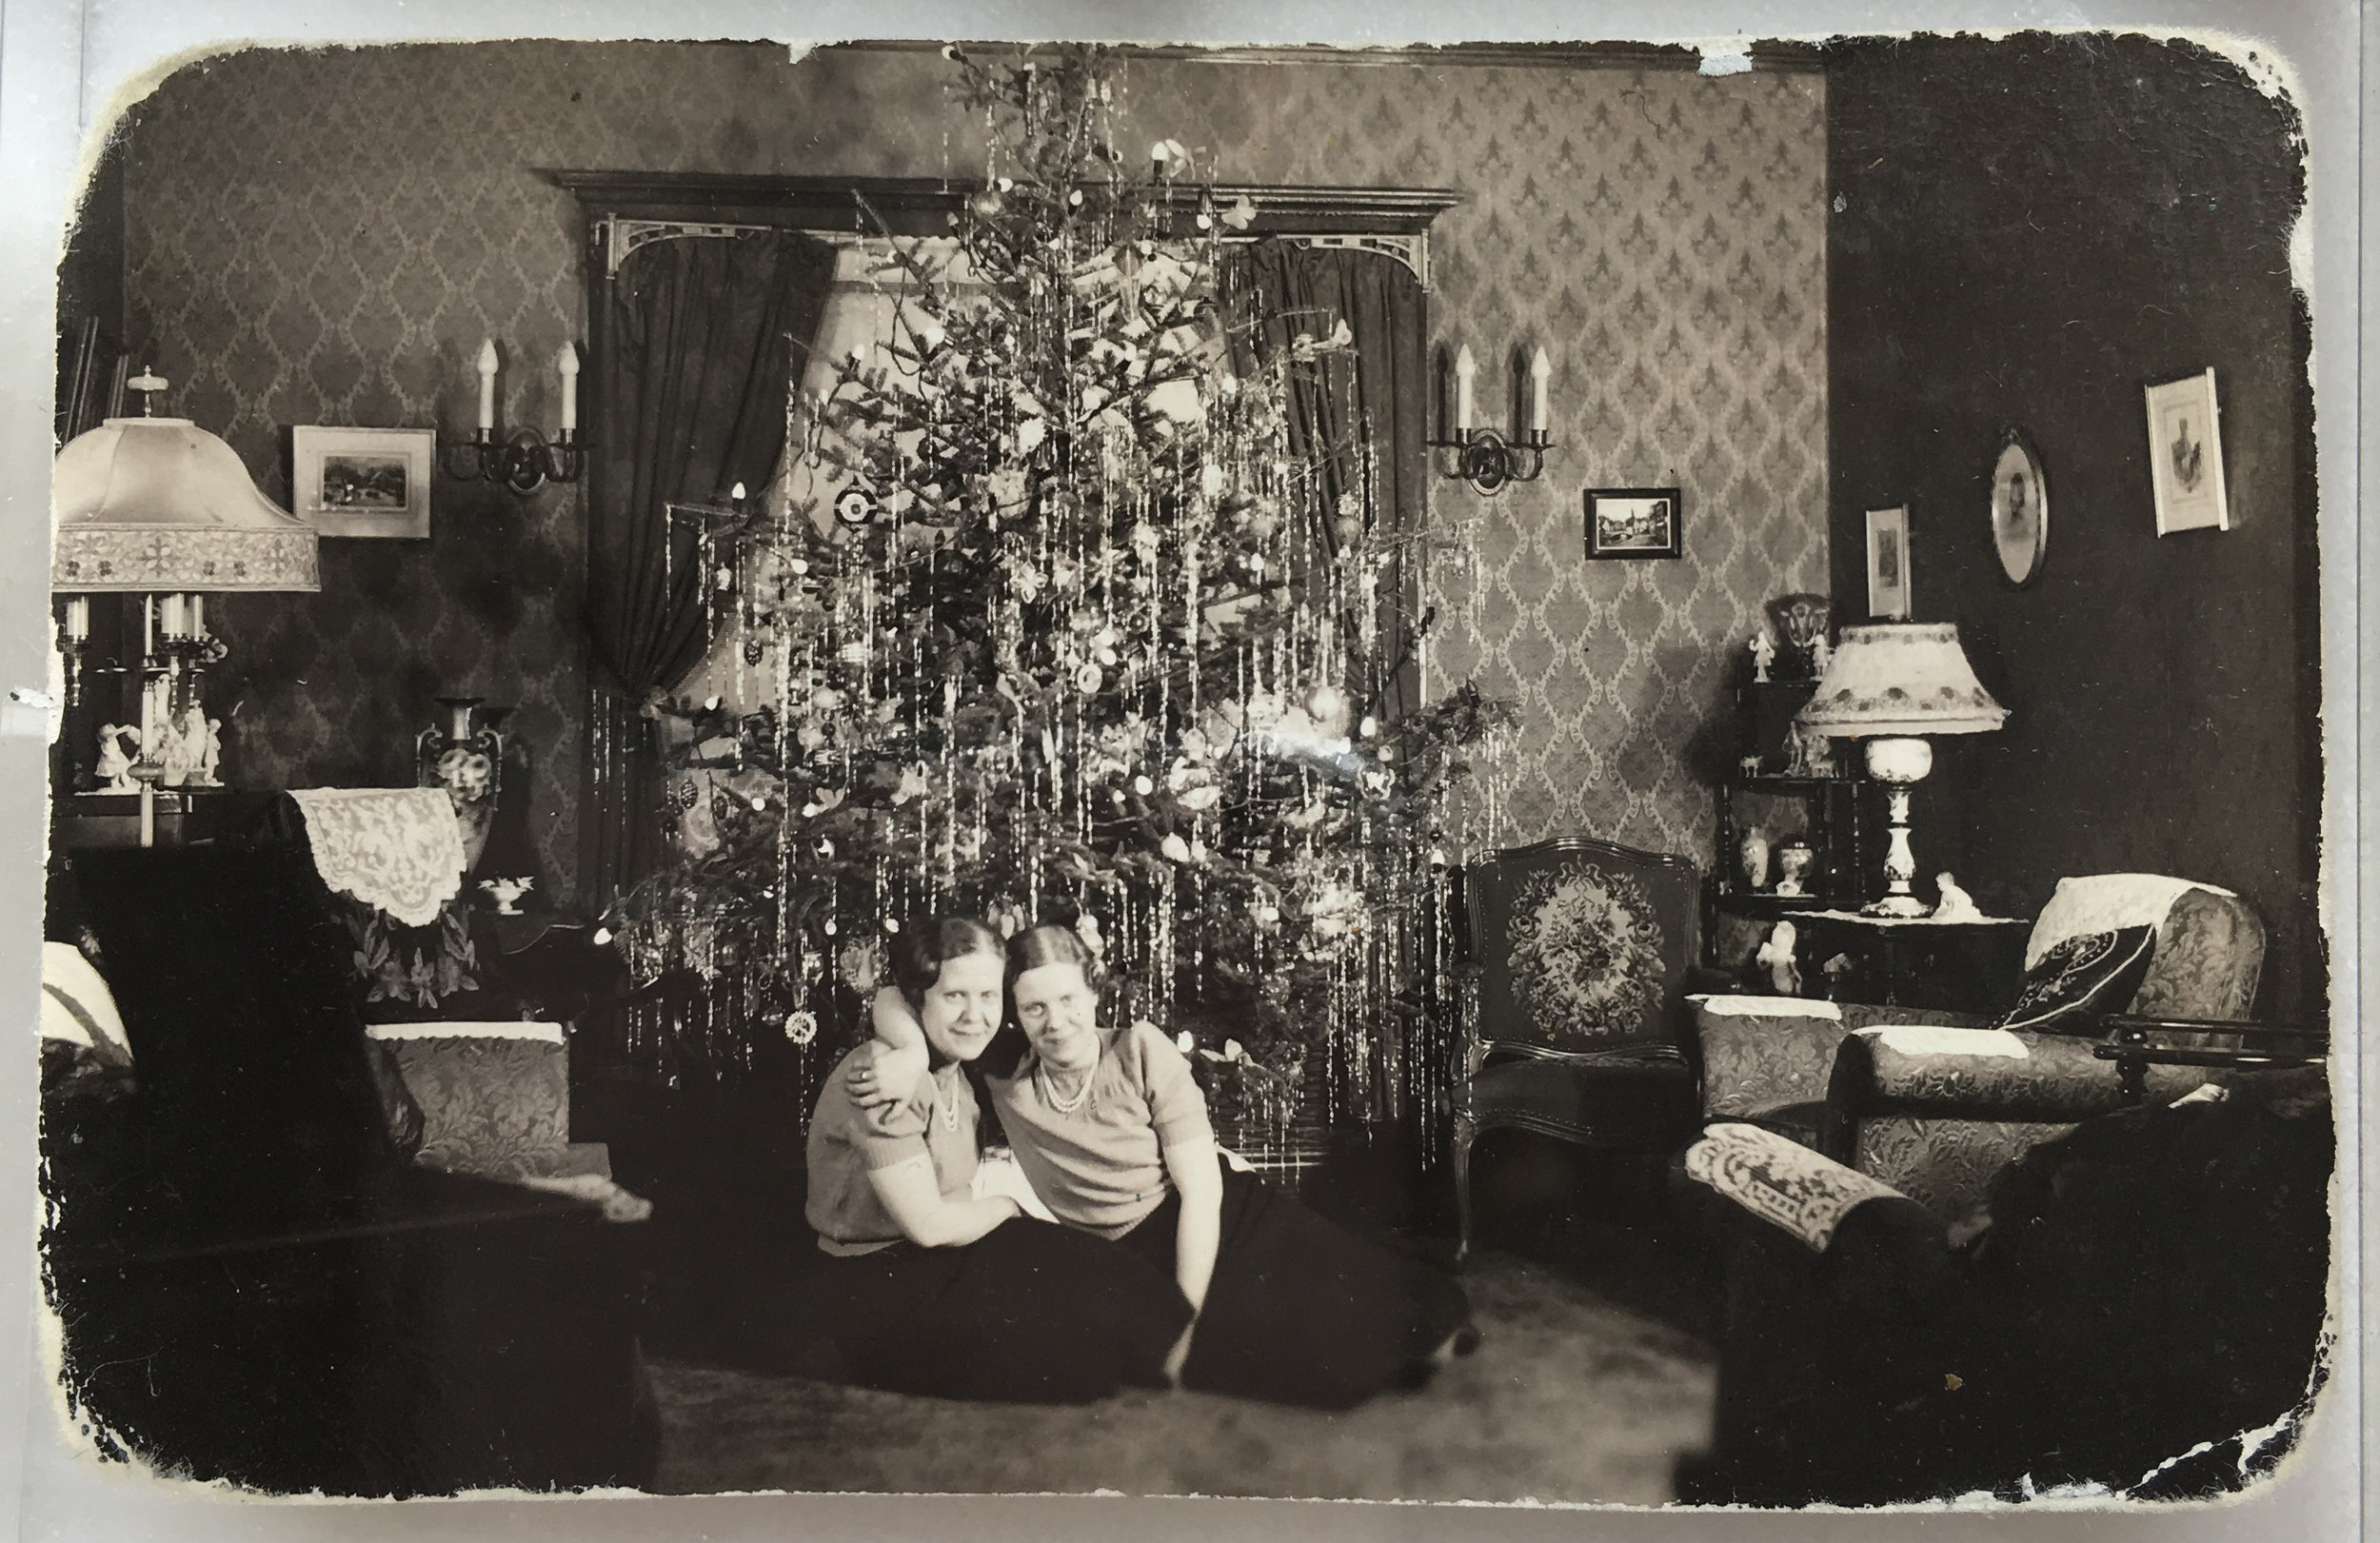 Christmas at the home, 1930's